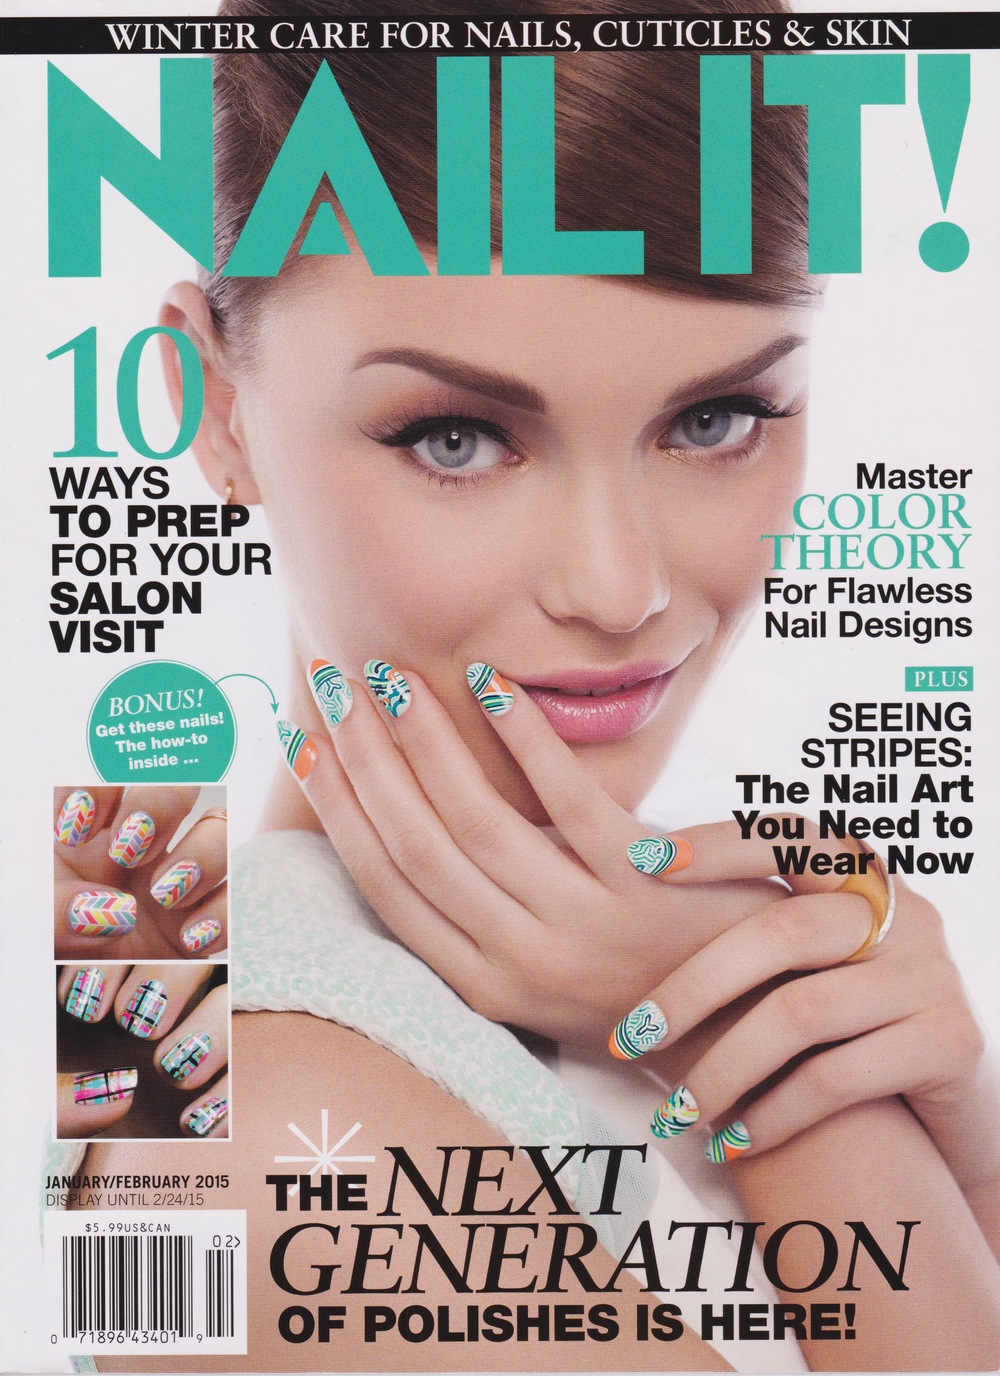 NAIL IT/ Jan Feb 2015